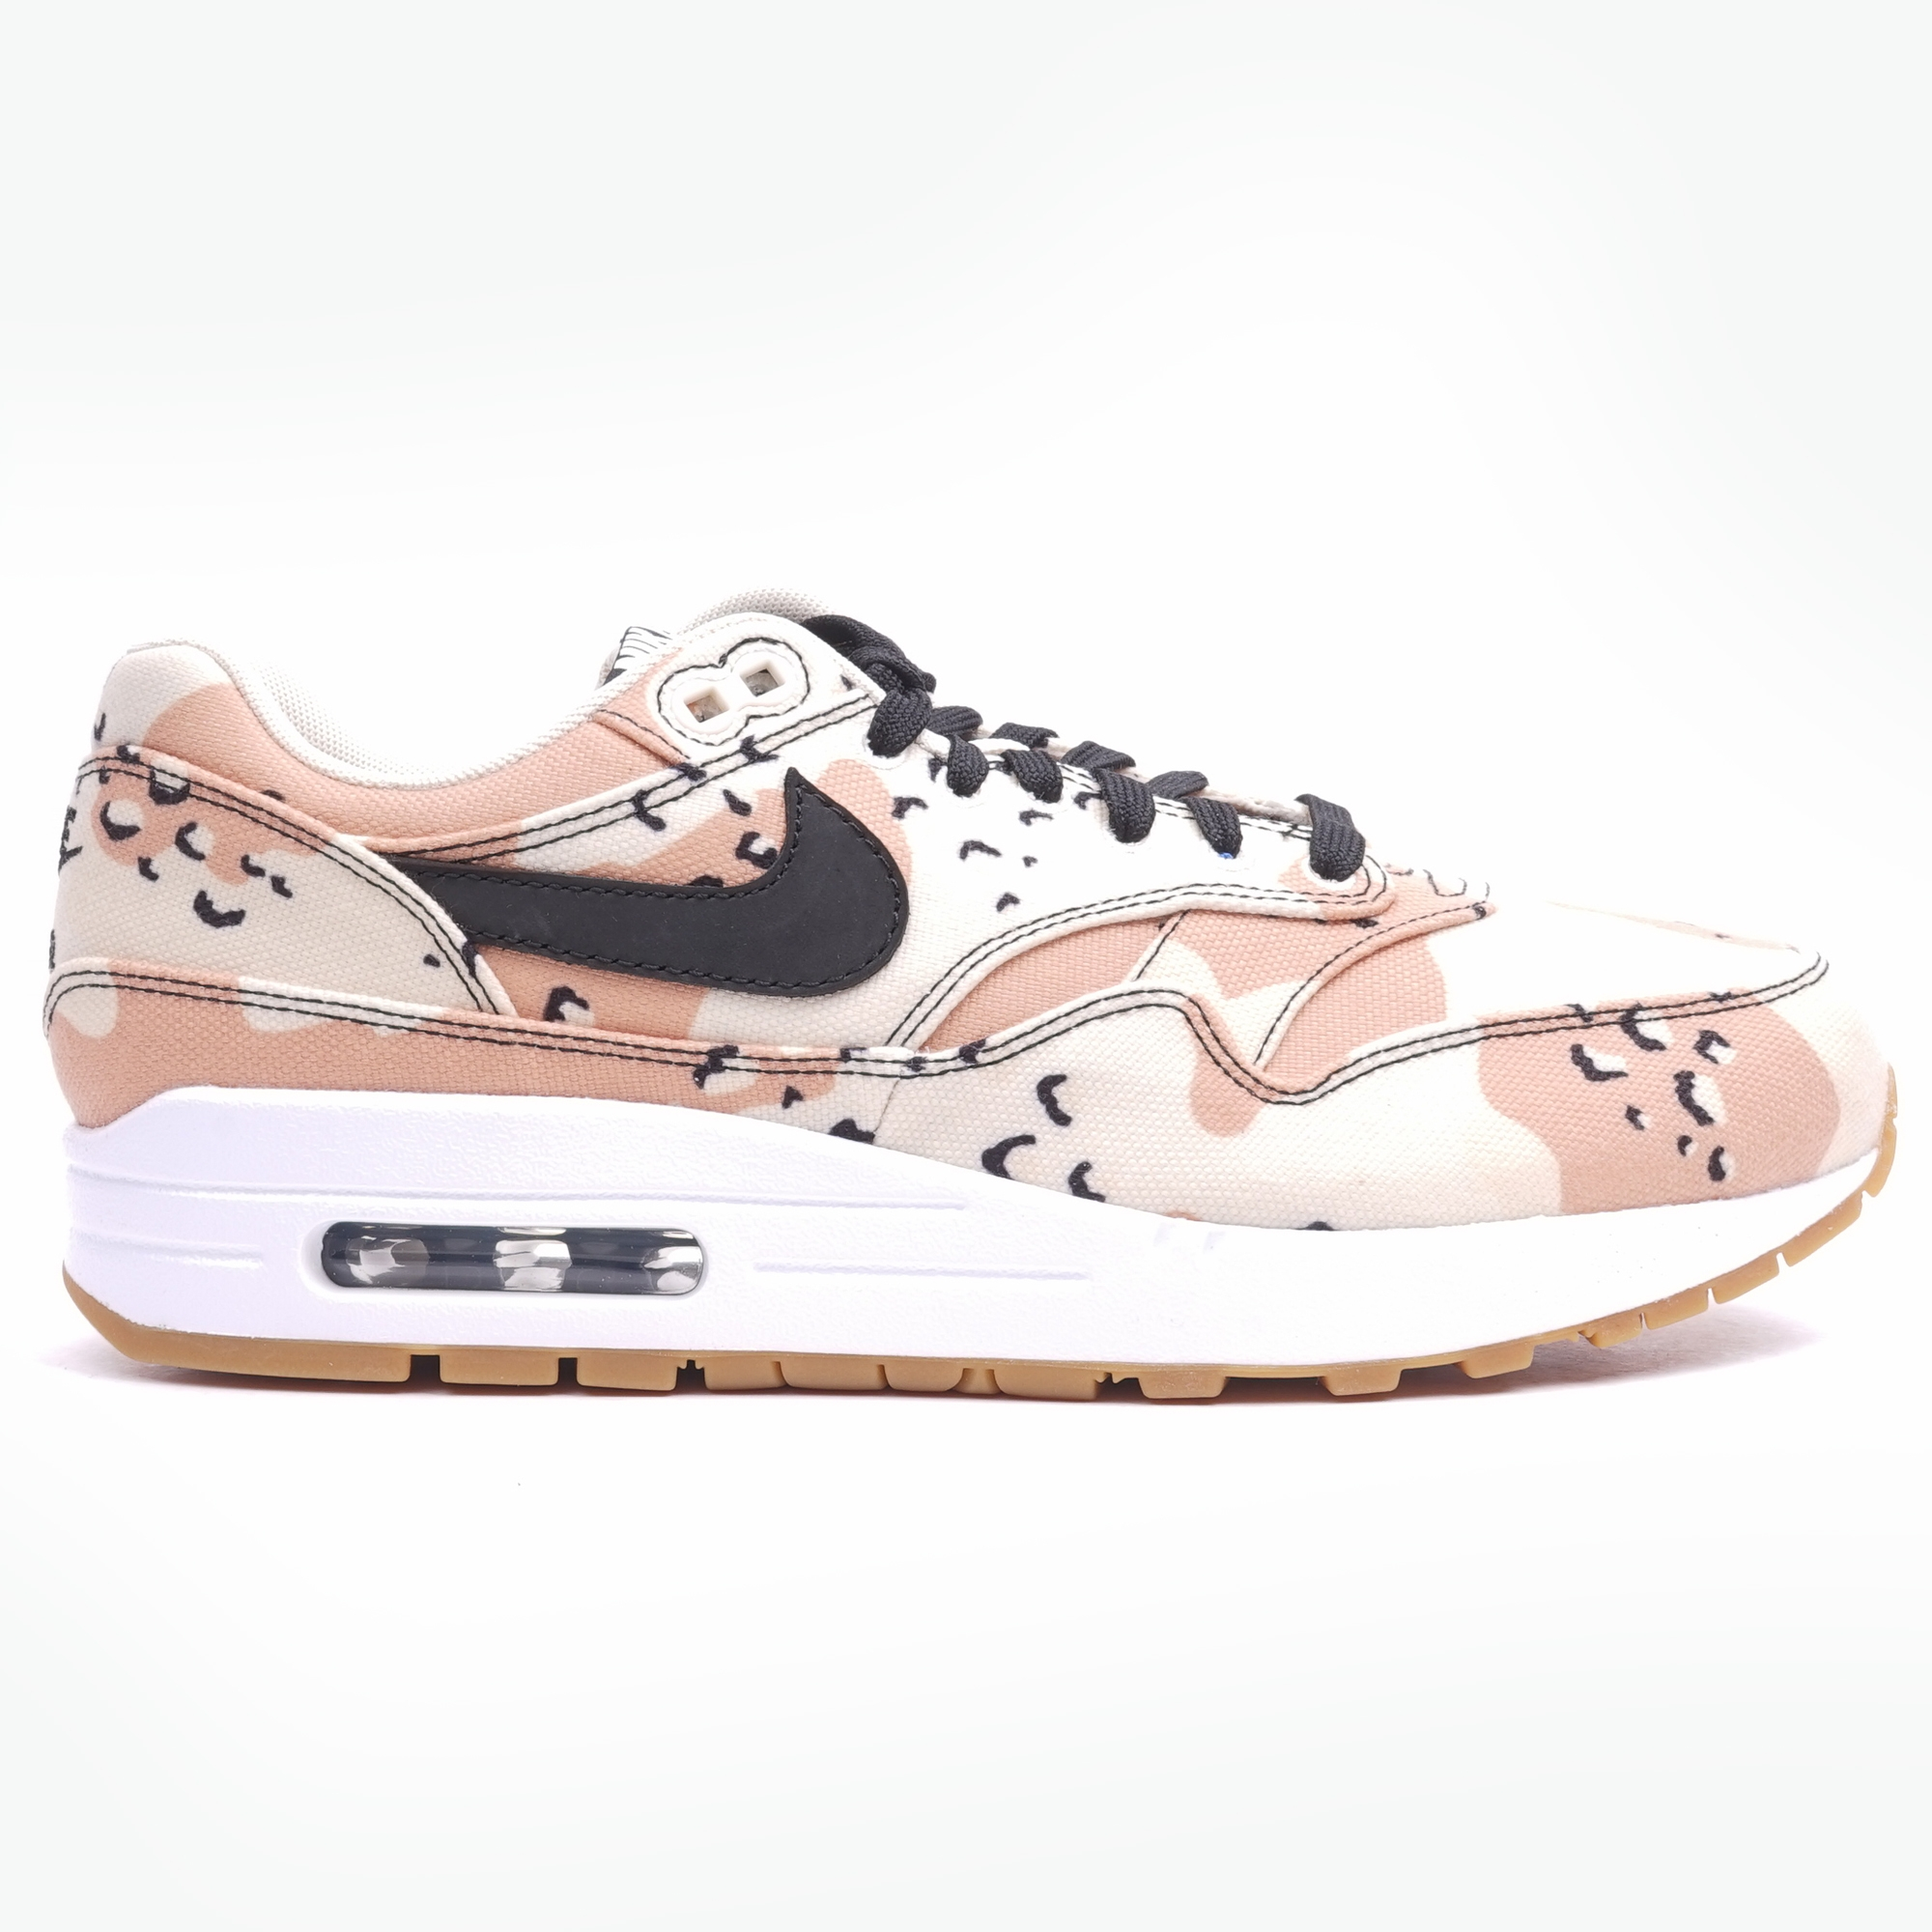 low priced aee6f 685e1 Nike Air Max 1 Desert Camo. Loading zoom